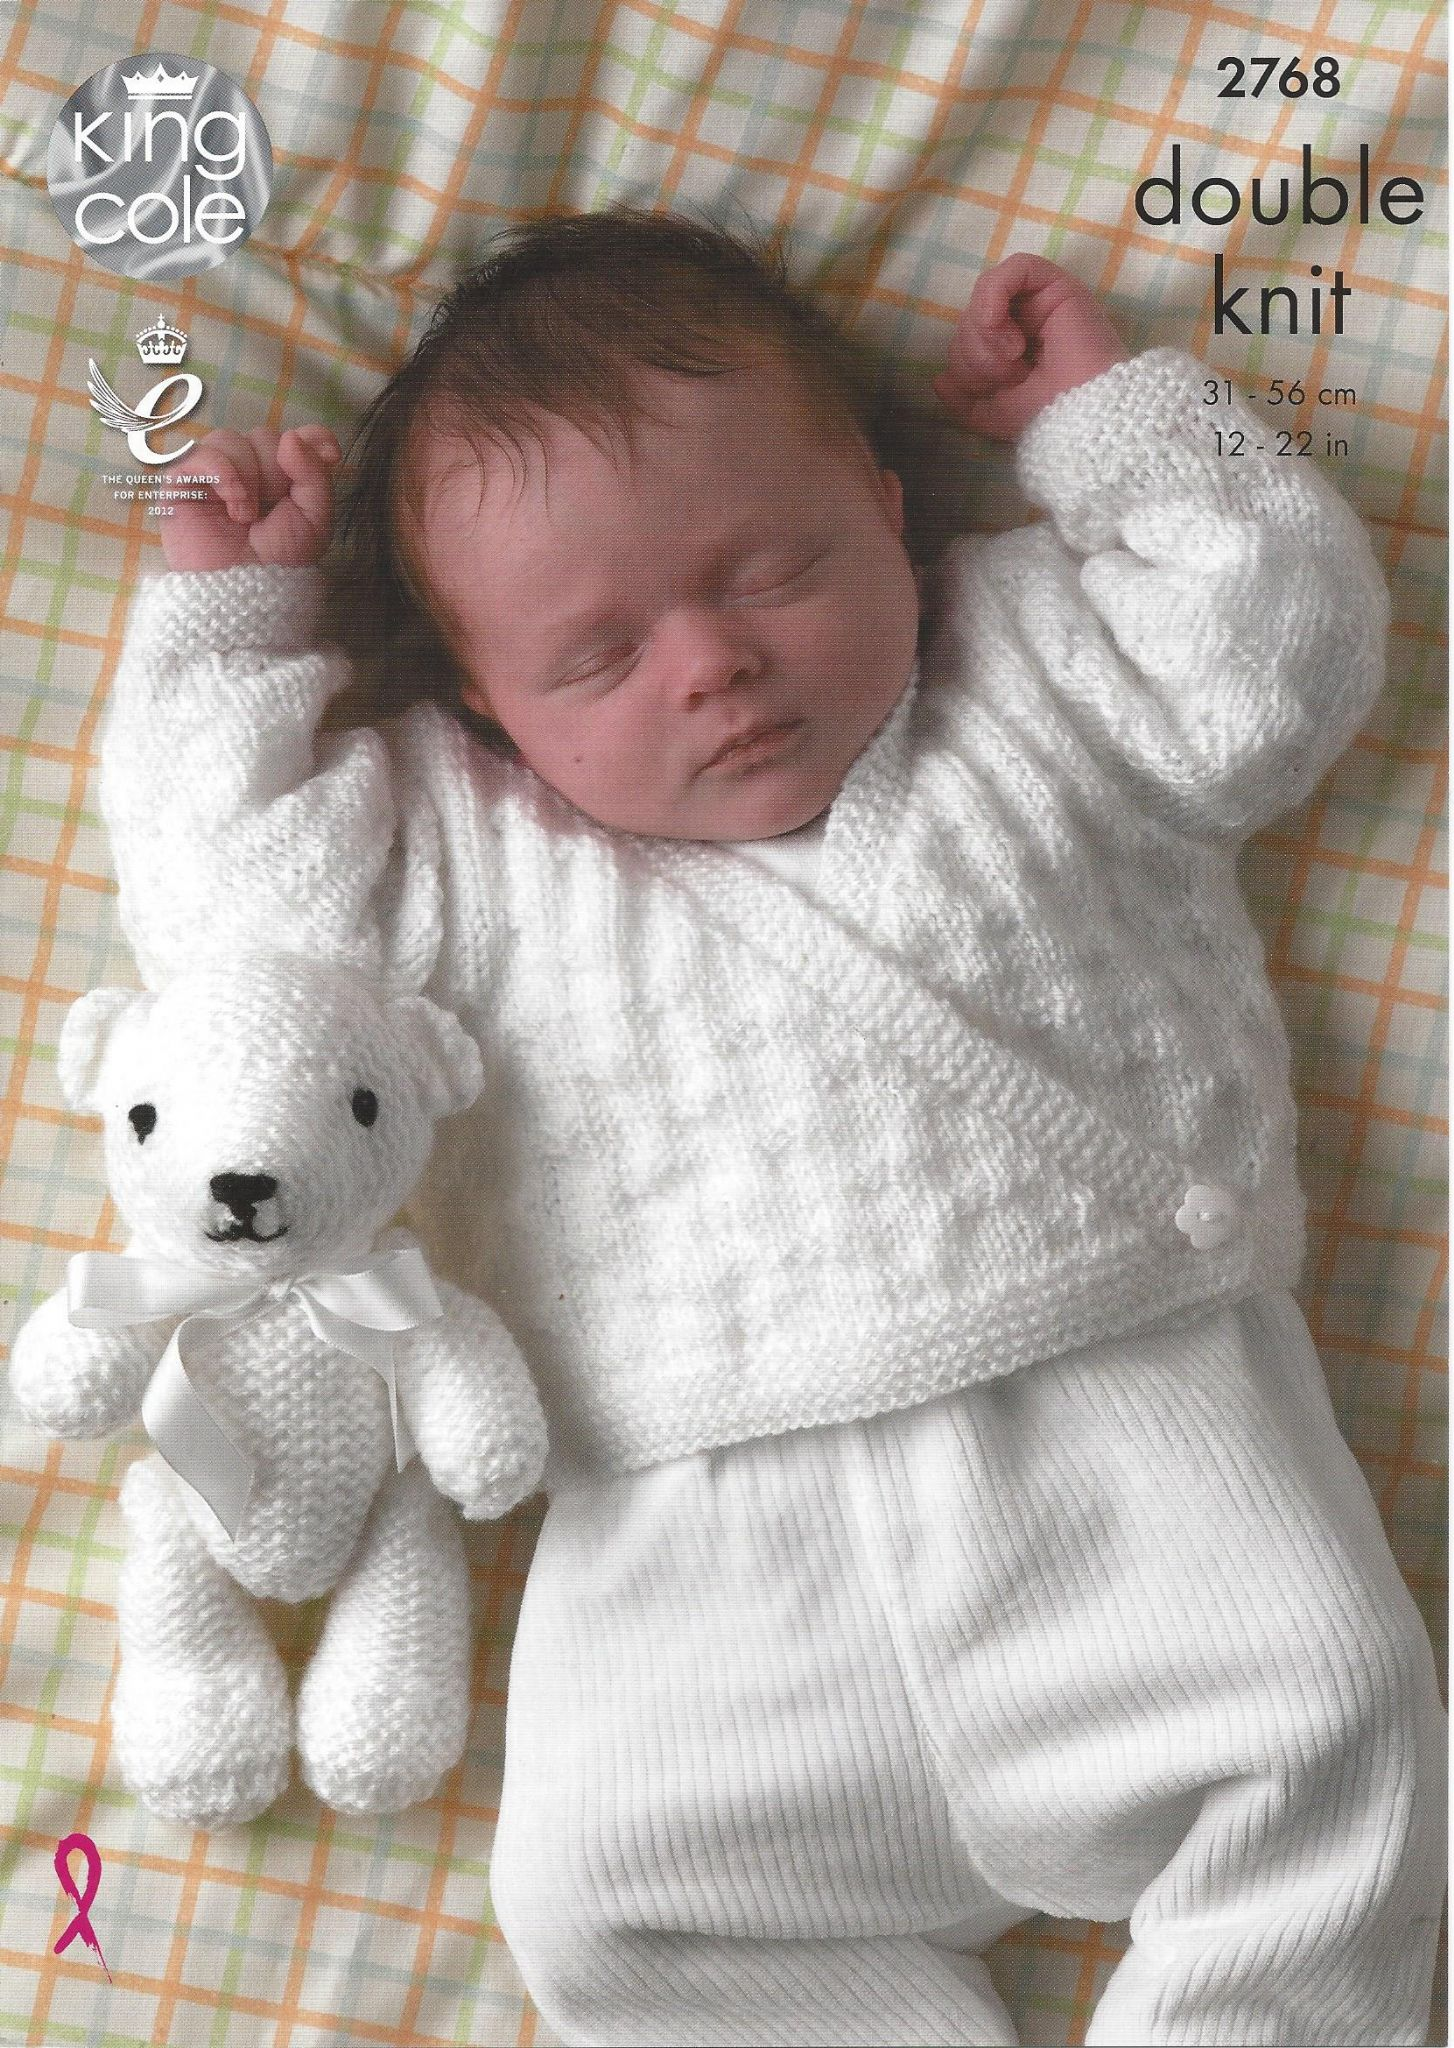 King cole baby dk knitting pattern 2768 sweater cardigans king cole baby dk knitting pattern 2768 sweater cardigans teddy bear bankloansurffo Image collections